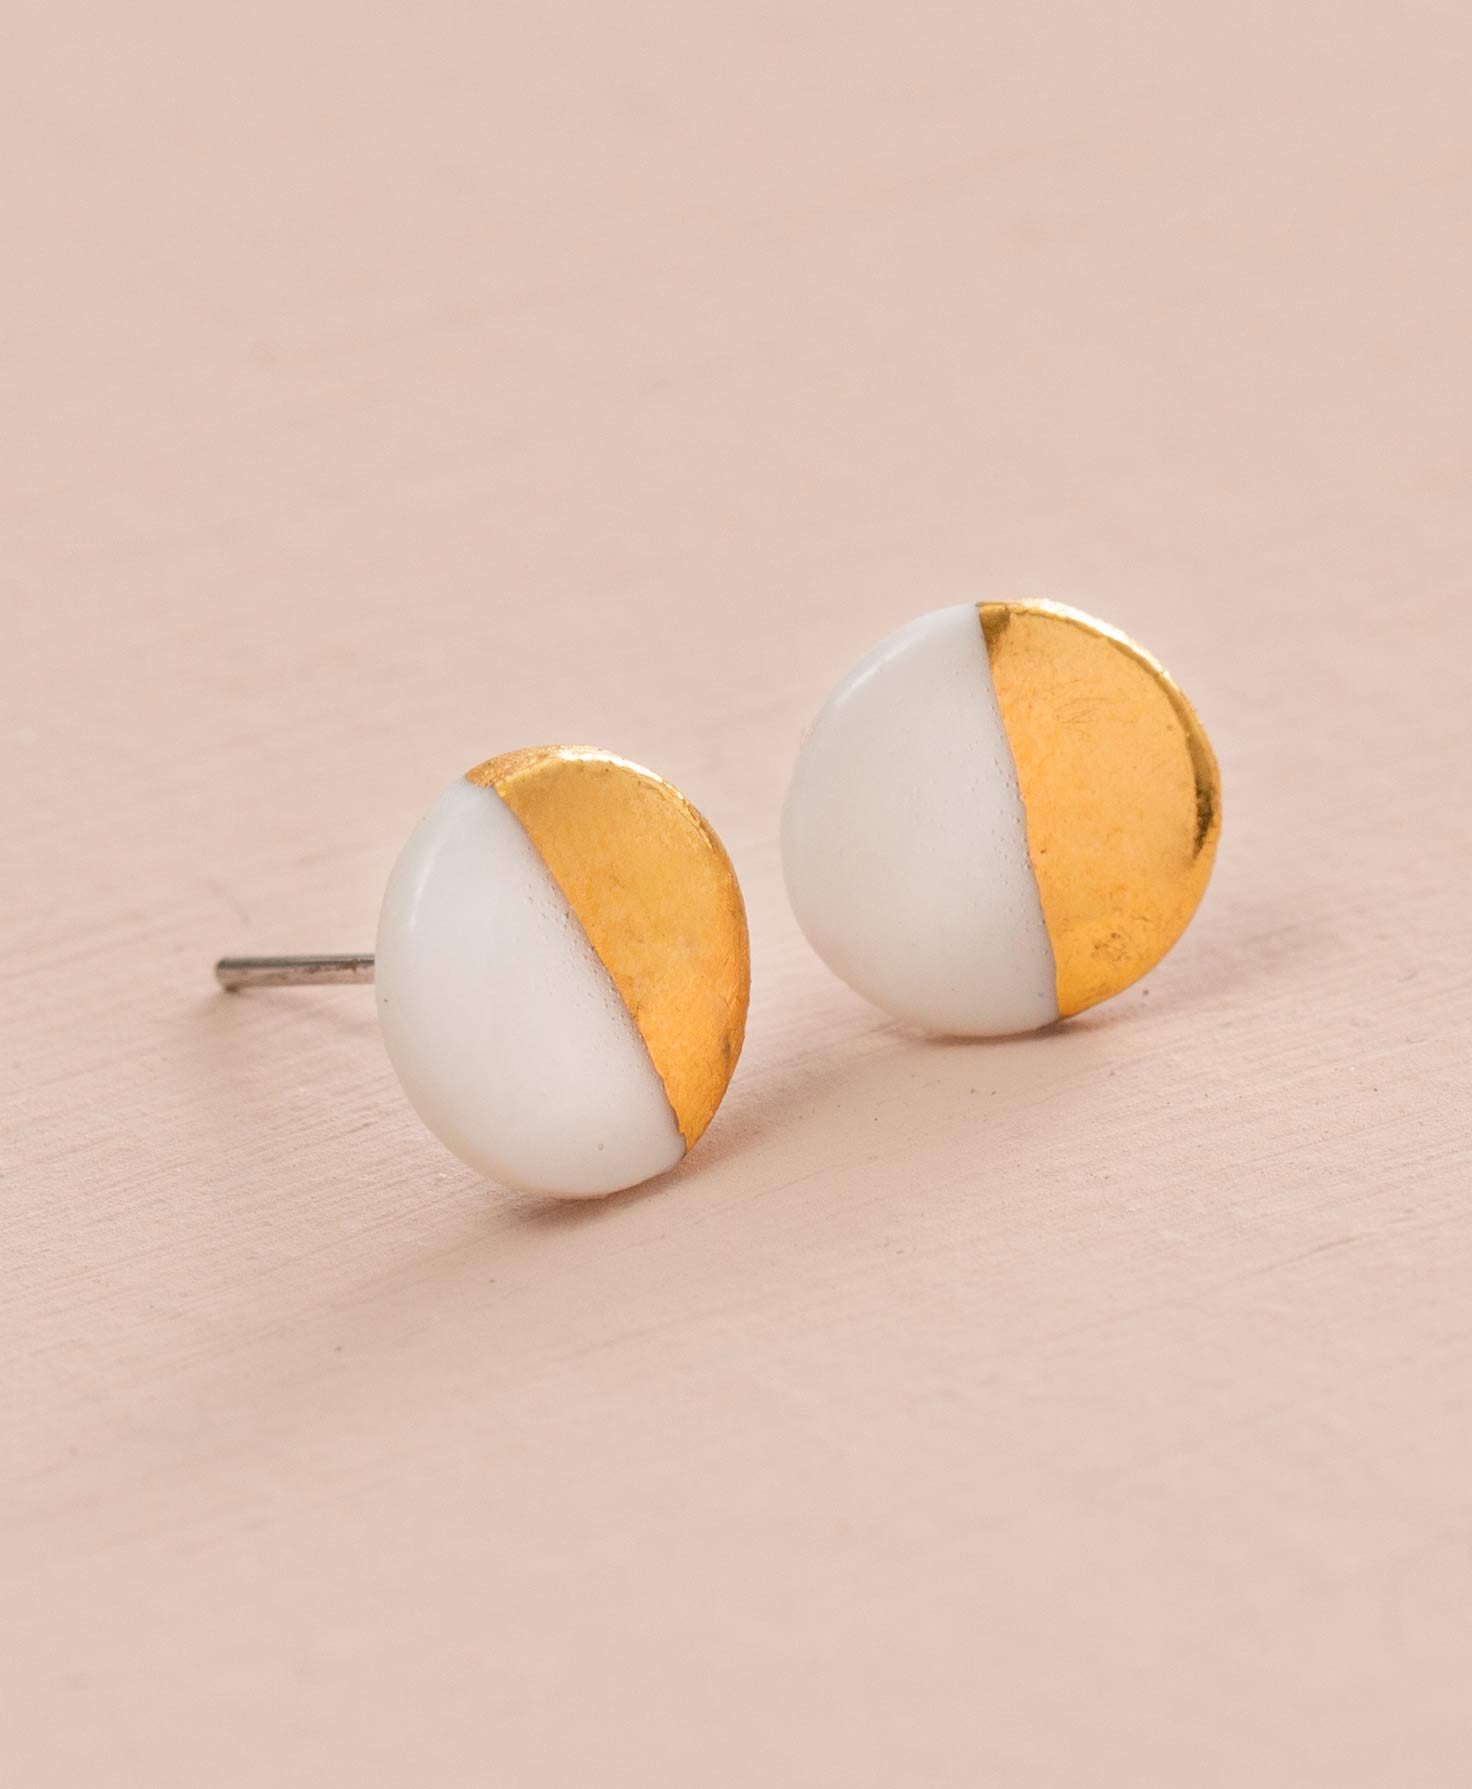 The Sweet Ceramic Studs rest on a blush colored background. They are post-style earrings featuring a small, flat ceramic disc attached to the ear post. The disc is a glossy white color, and one half of it has been dipped in gleaming gold luster for a half-and-half look.